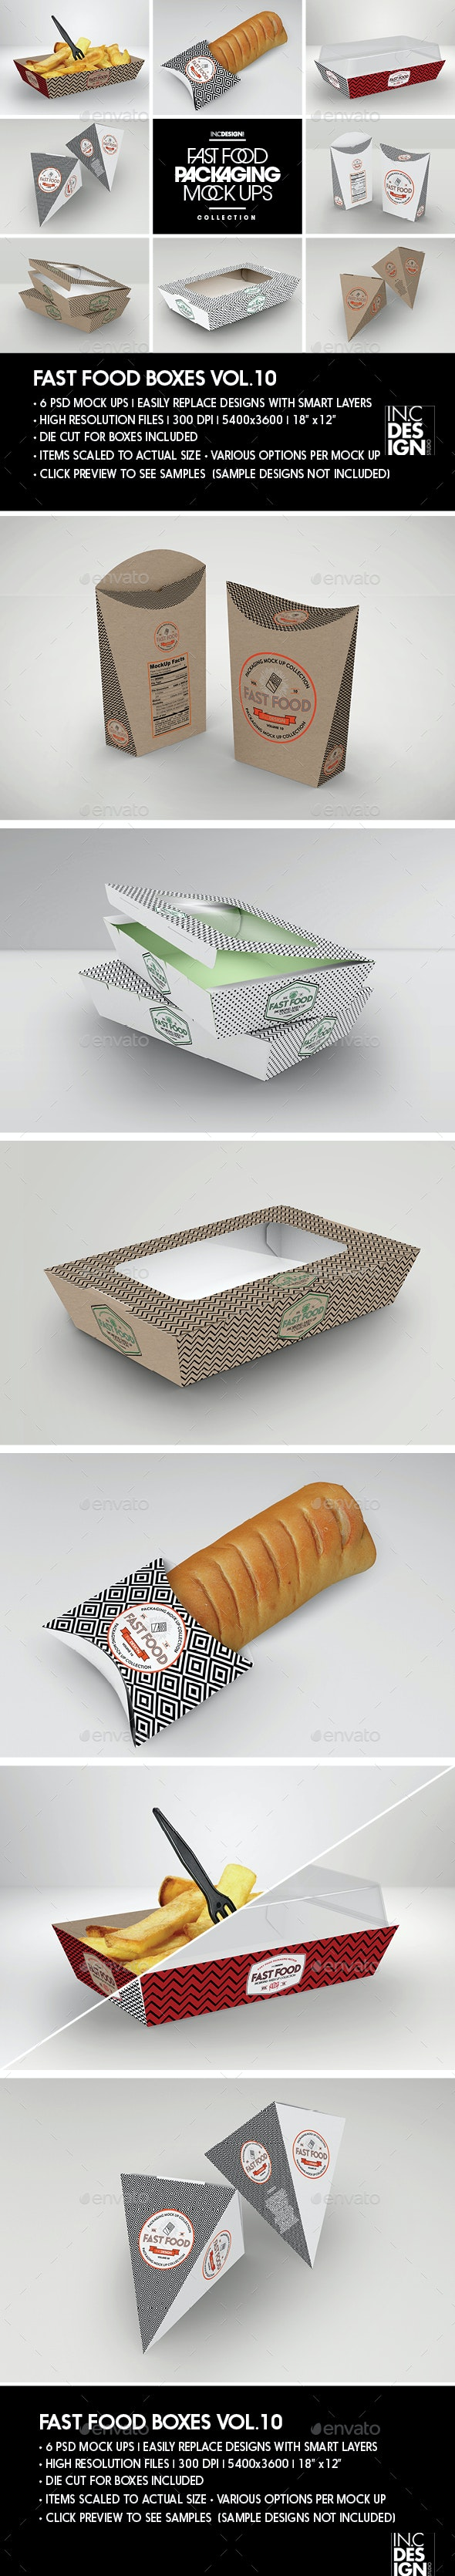 Fast Food Boxes Vol.10:Take Out Packaging Mock Ups - Food and Drink Packaging